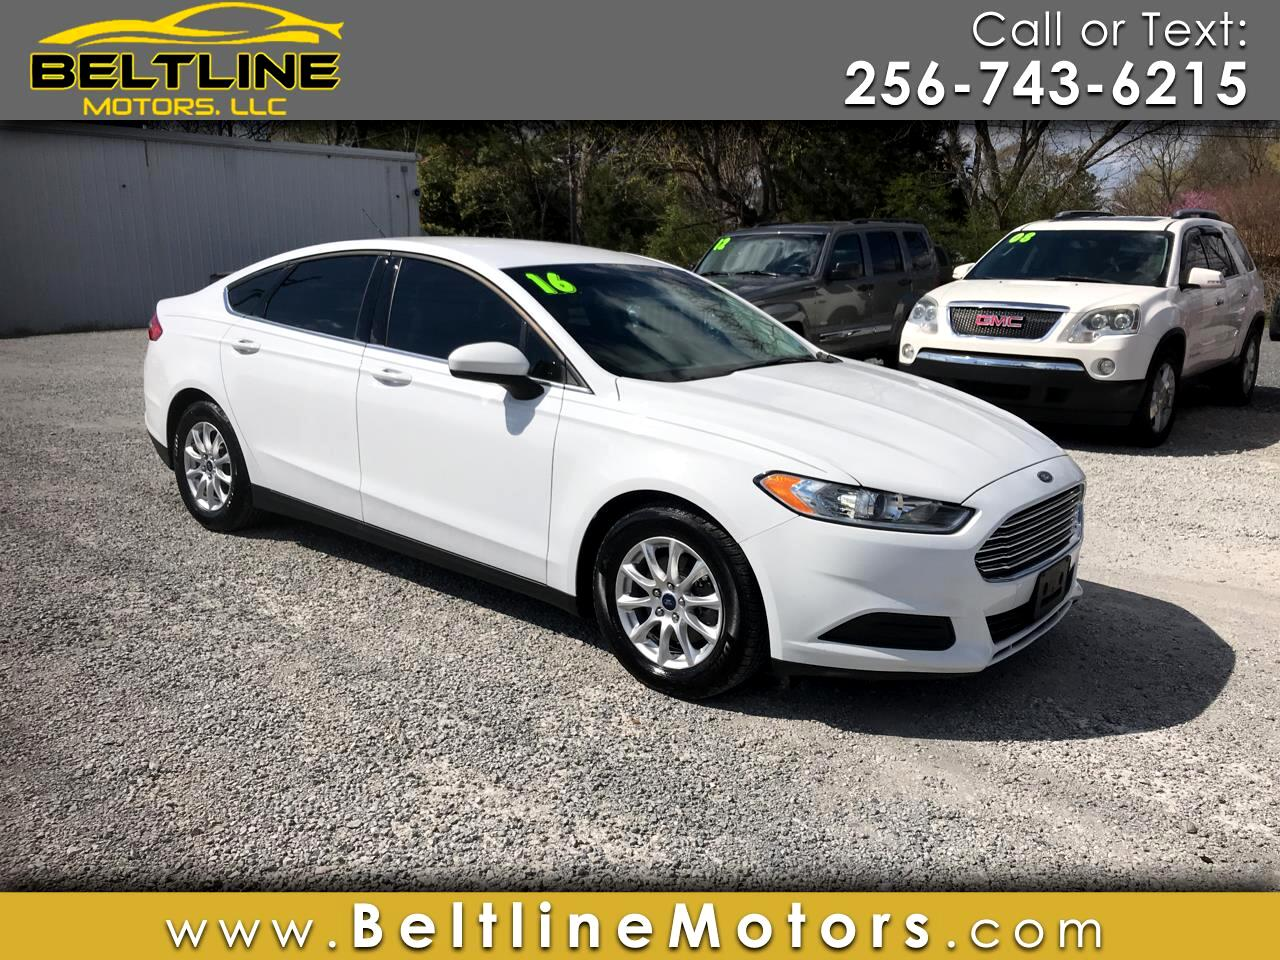 2016 Ford Fusion 4dr Sdn S FWD